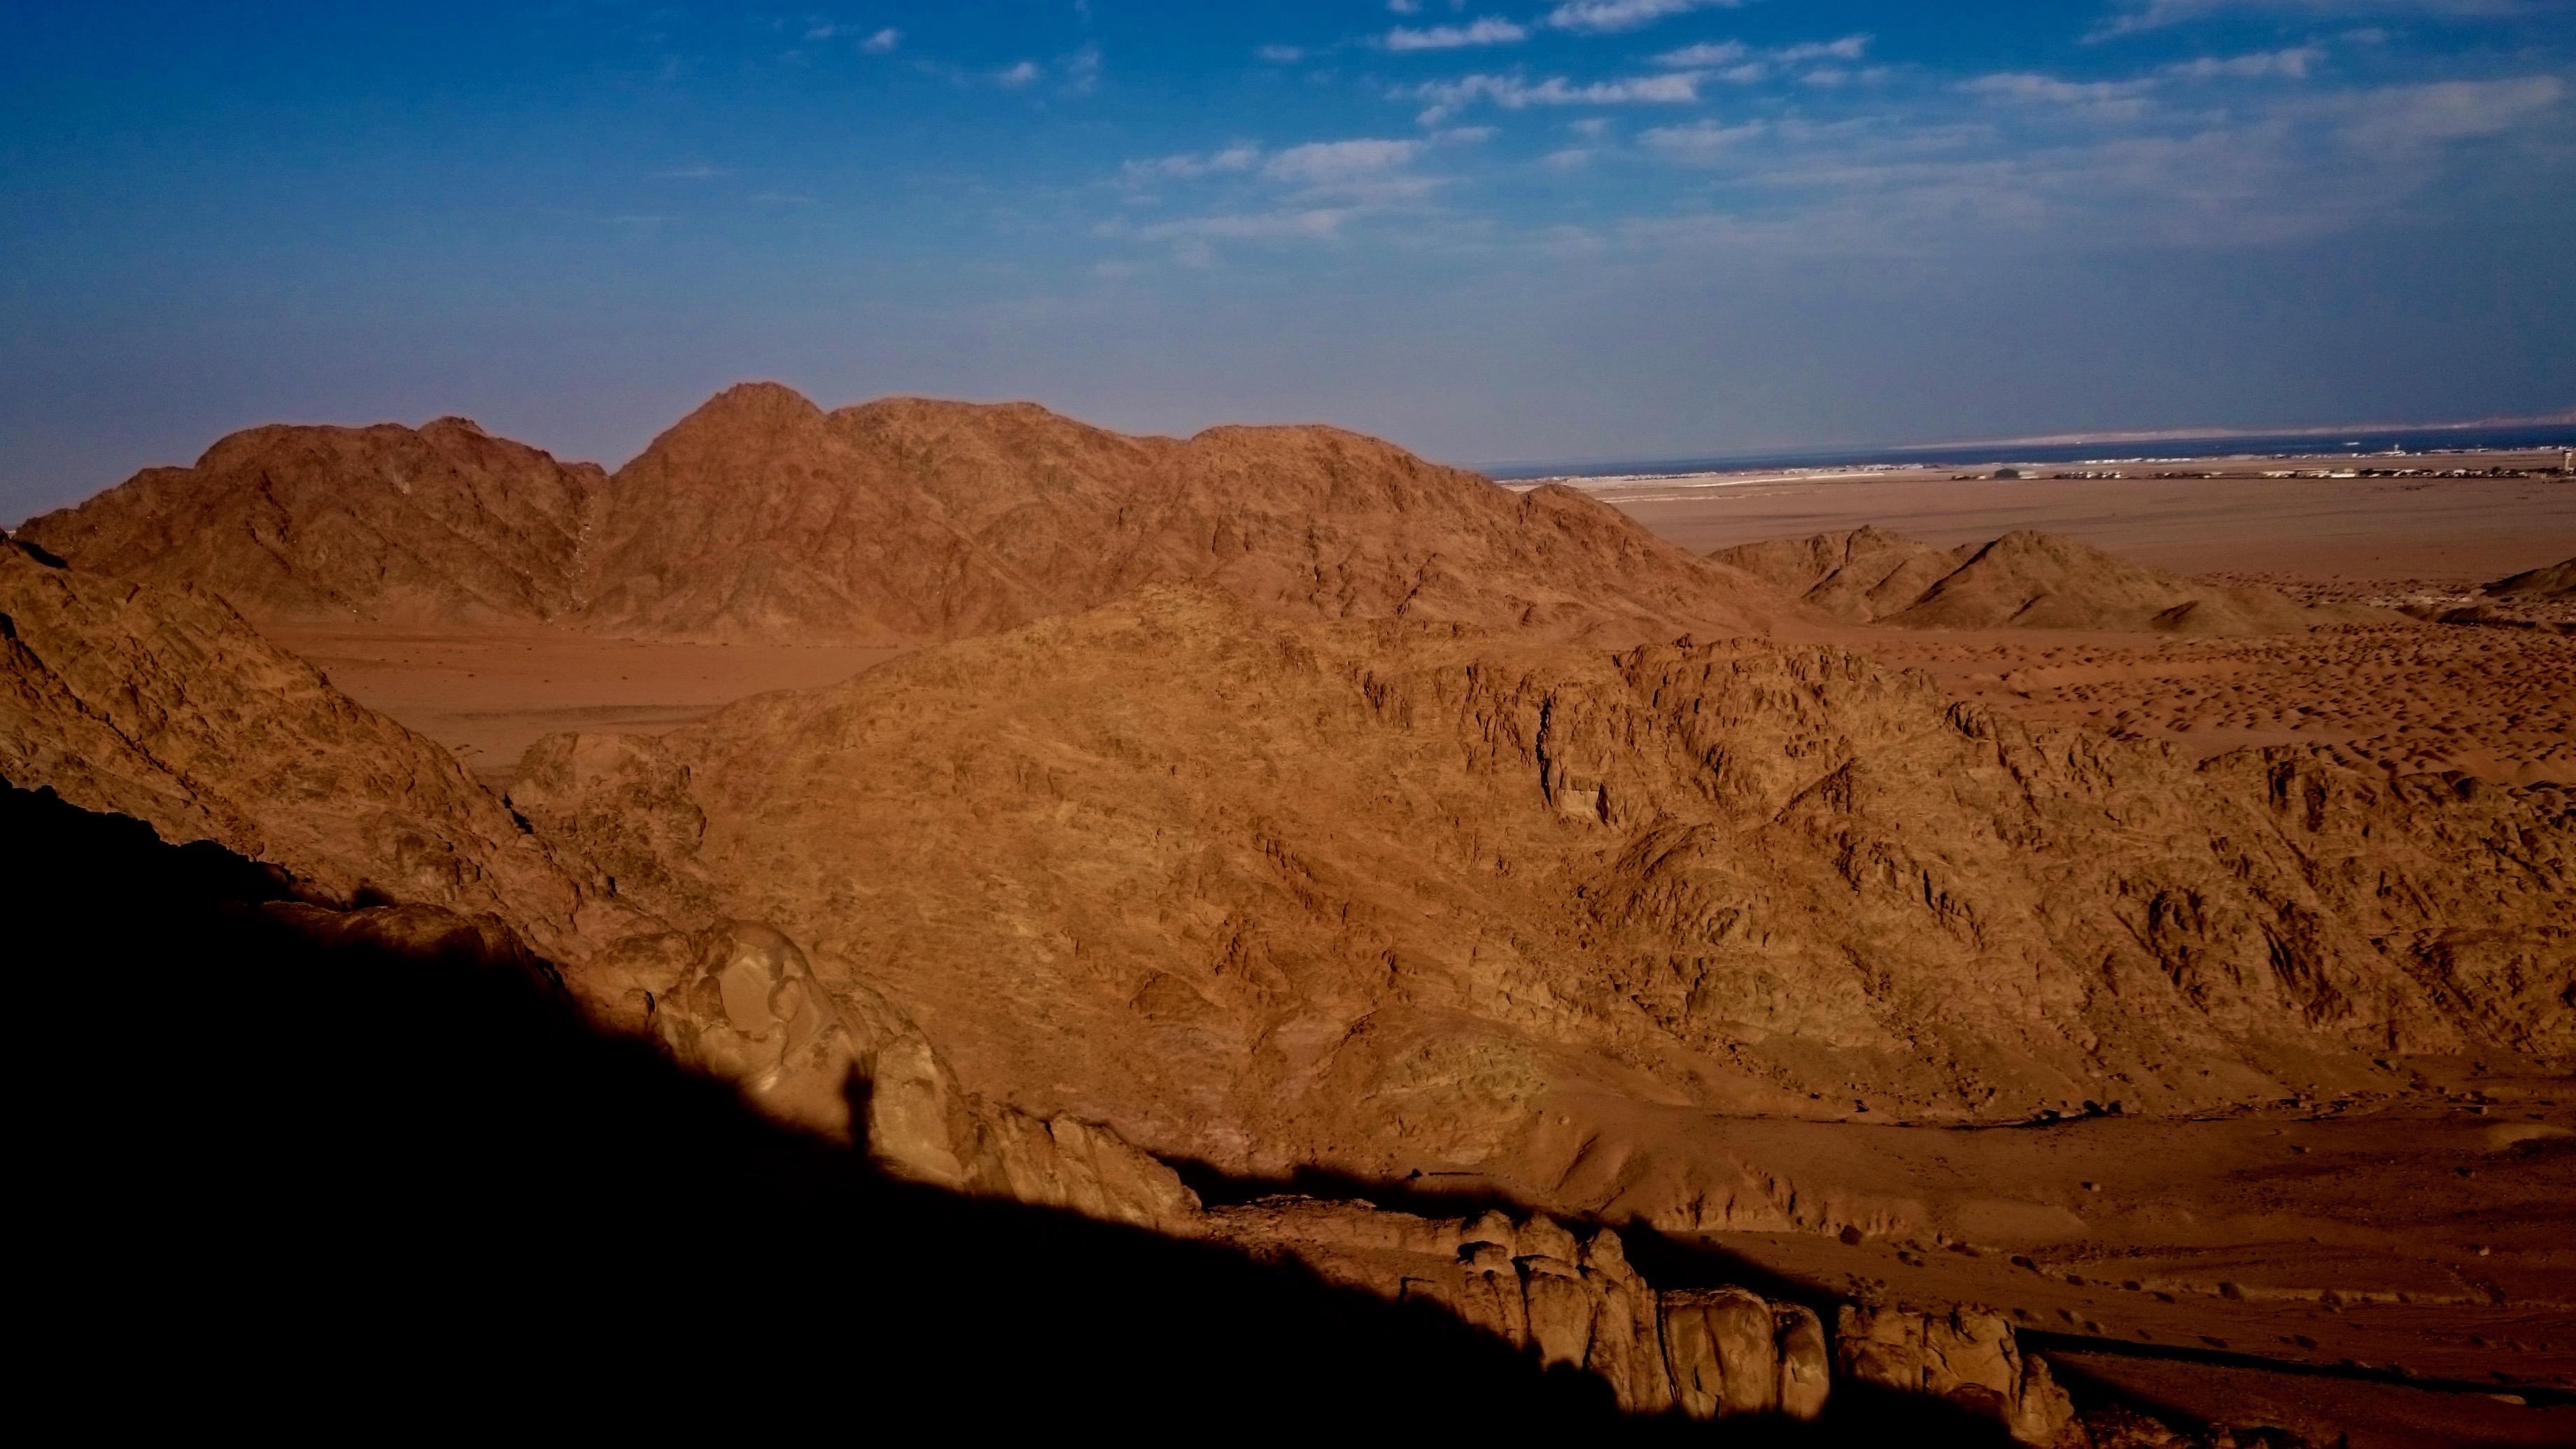 2015 - South Sinai Dessert, Egypt - My shadow on a low mountain ridge during the setting sun...